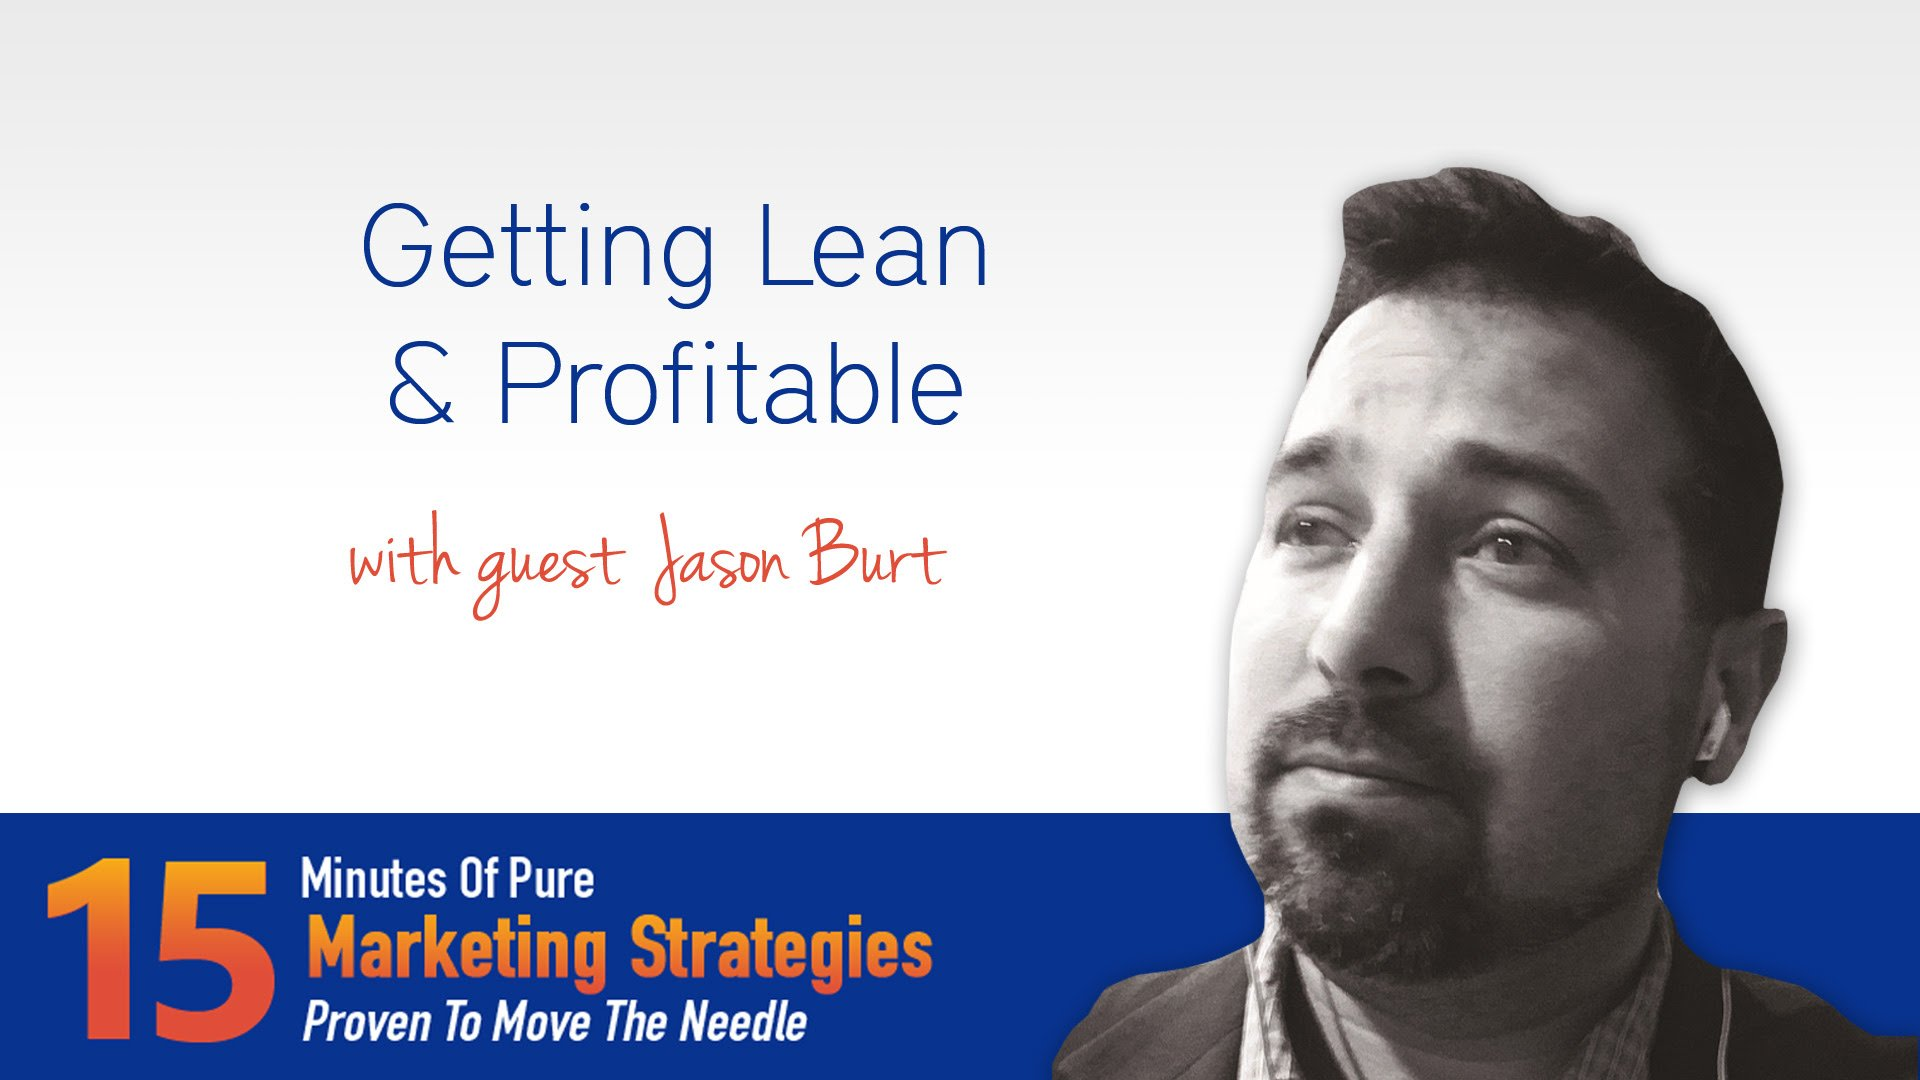 Lean & Profitable